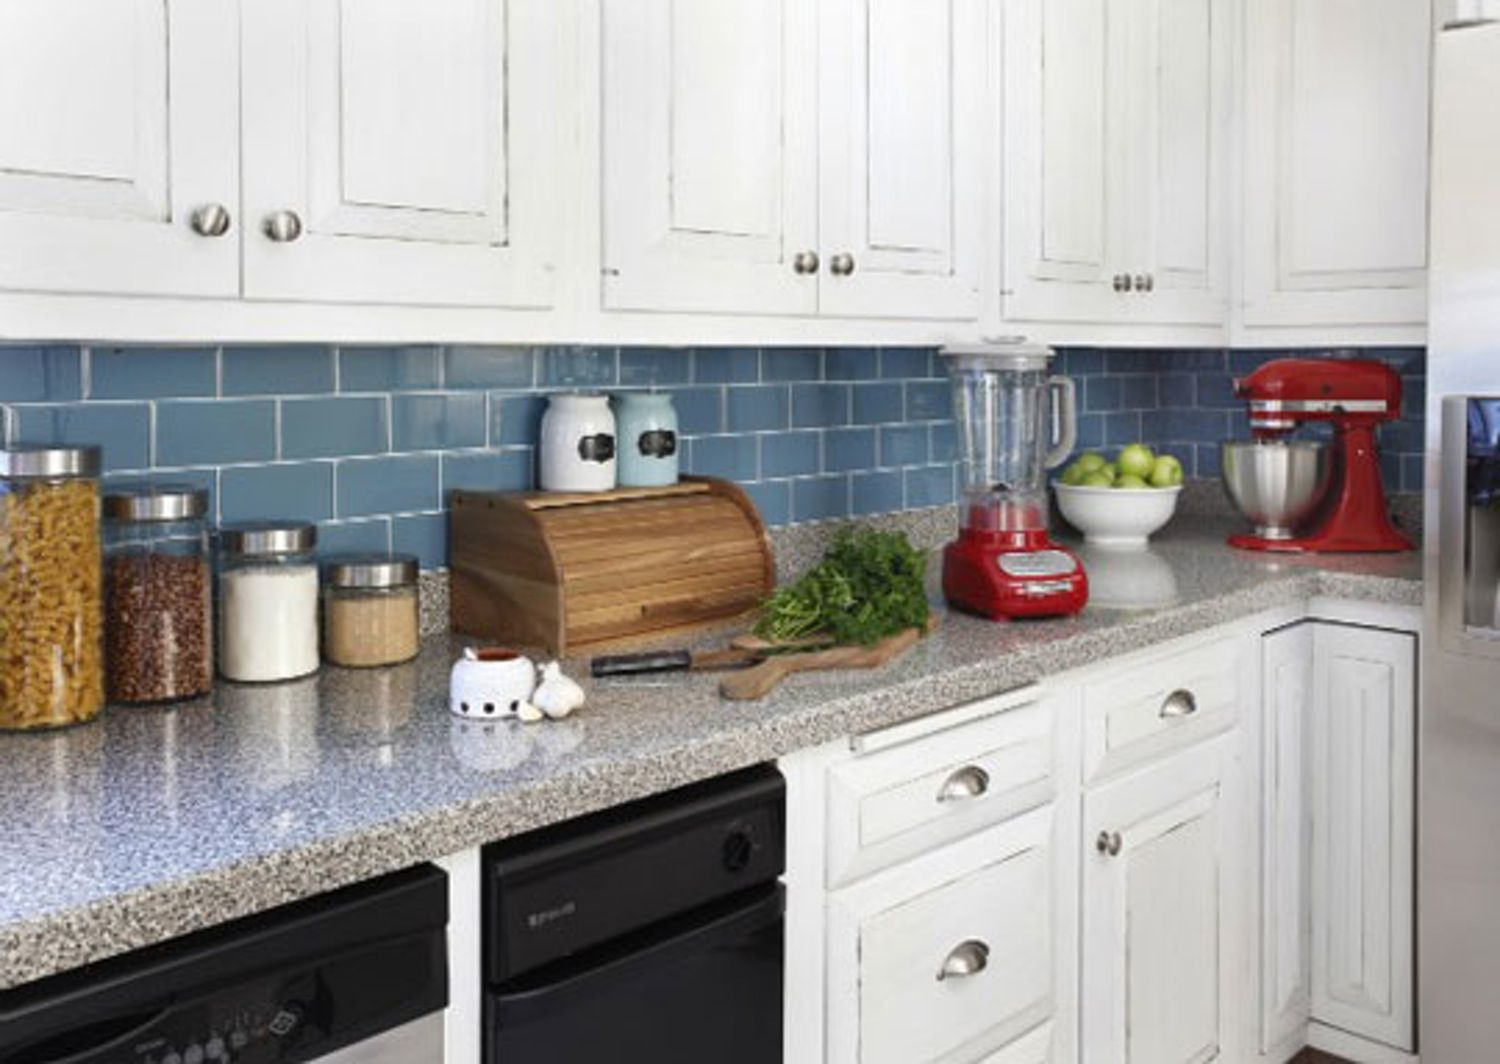 renters solutions install a removable backsplash - Abnehmbare Backsplash Lowes